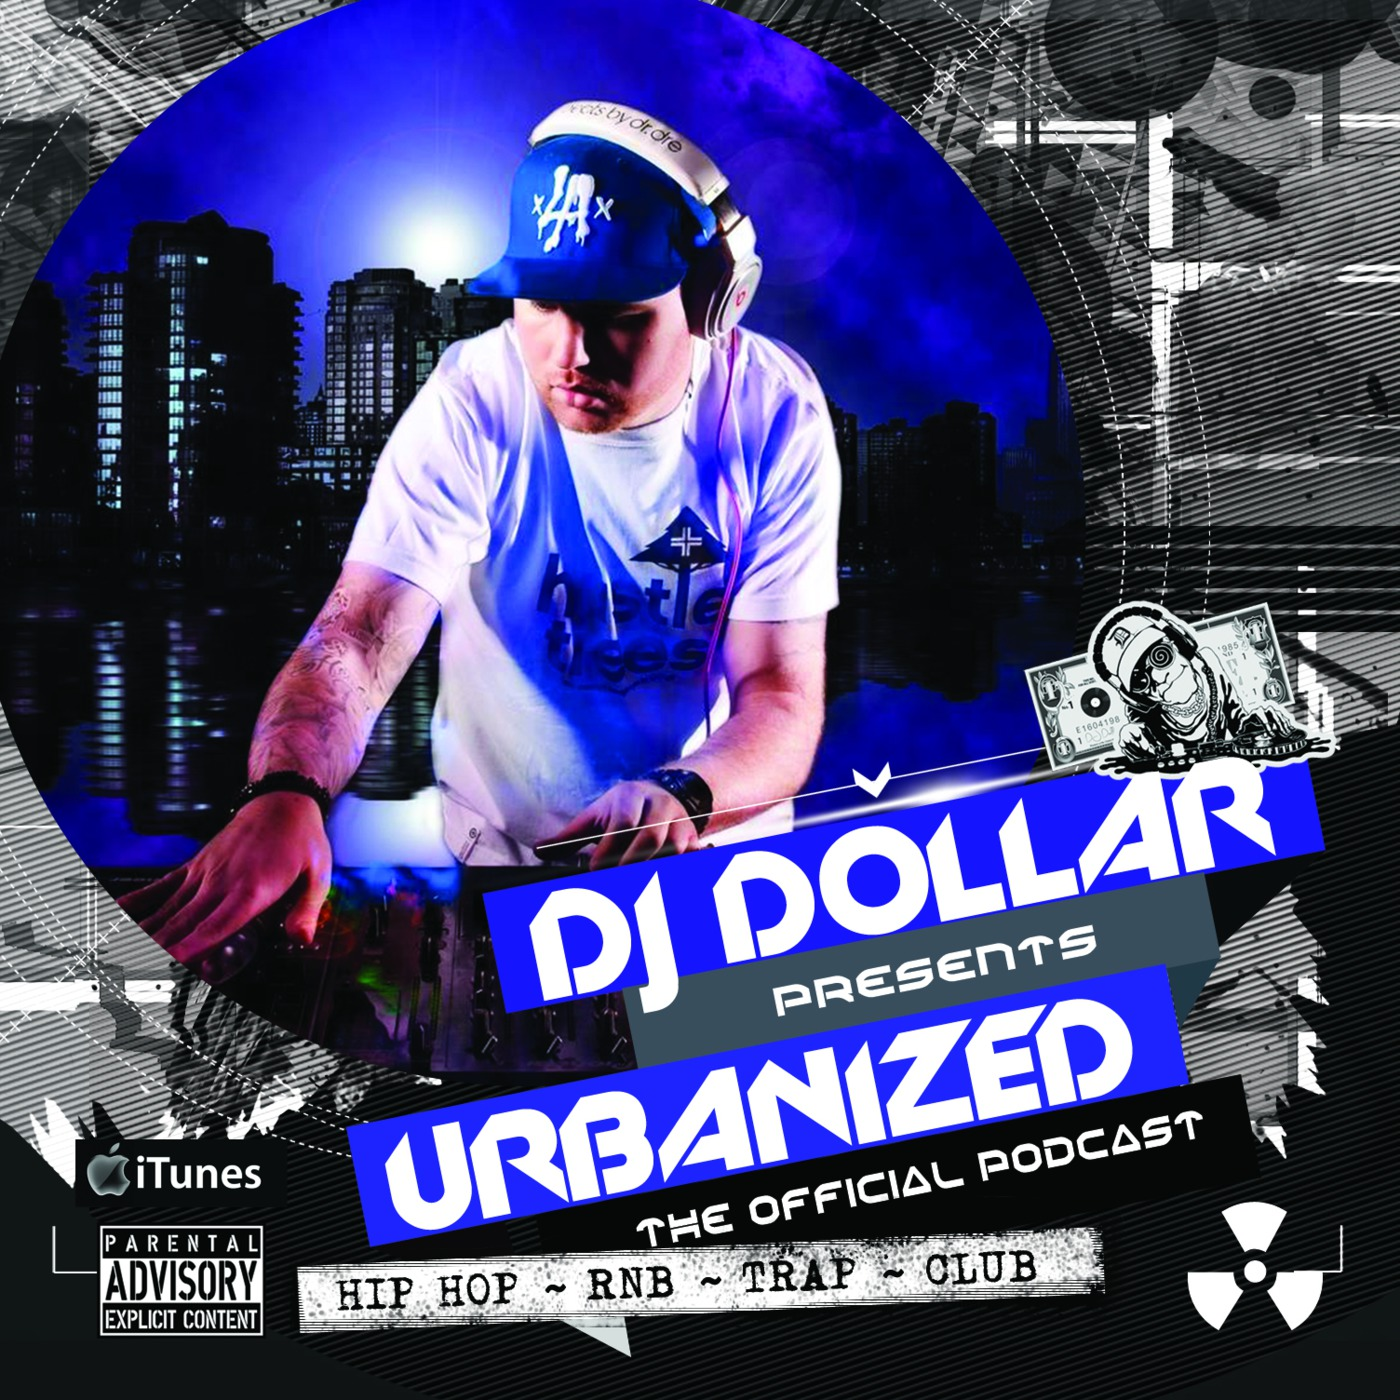 Dj Dollar's Podcast